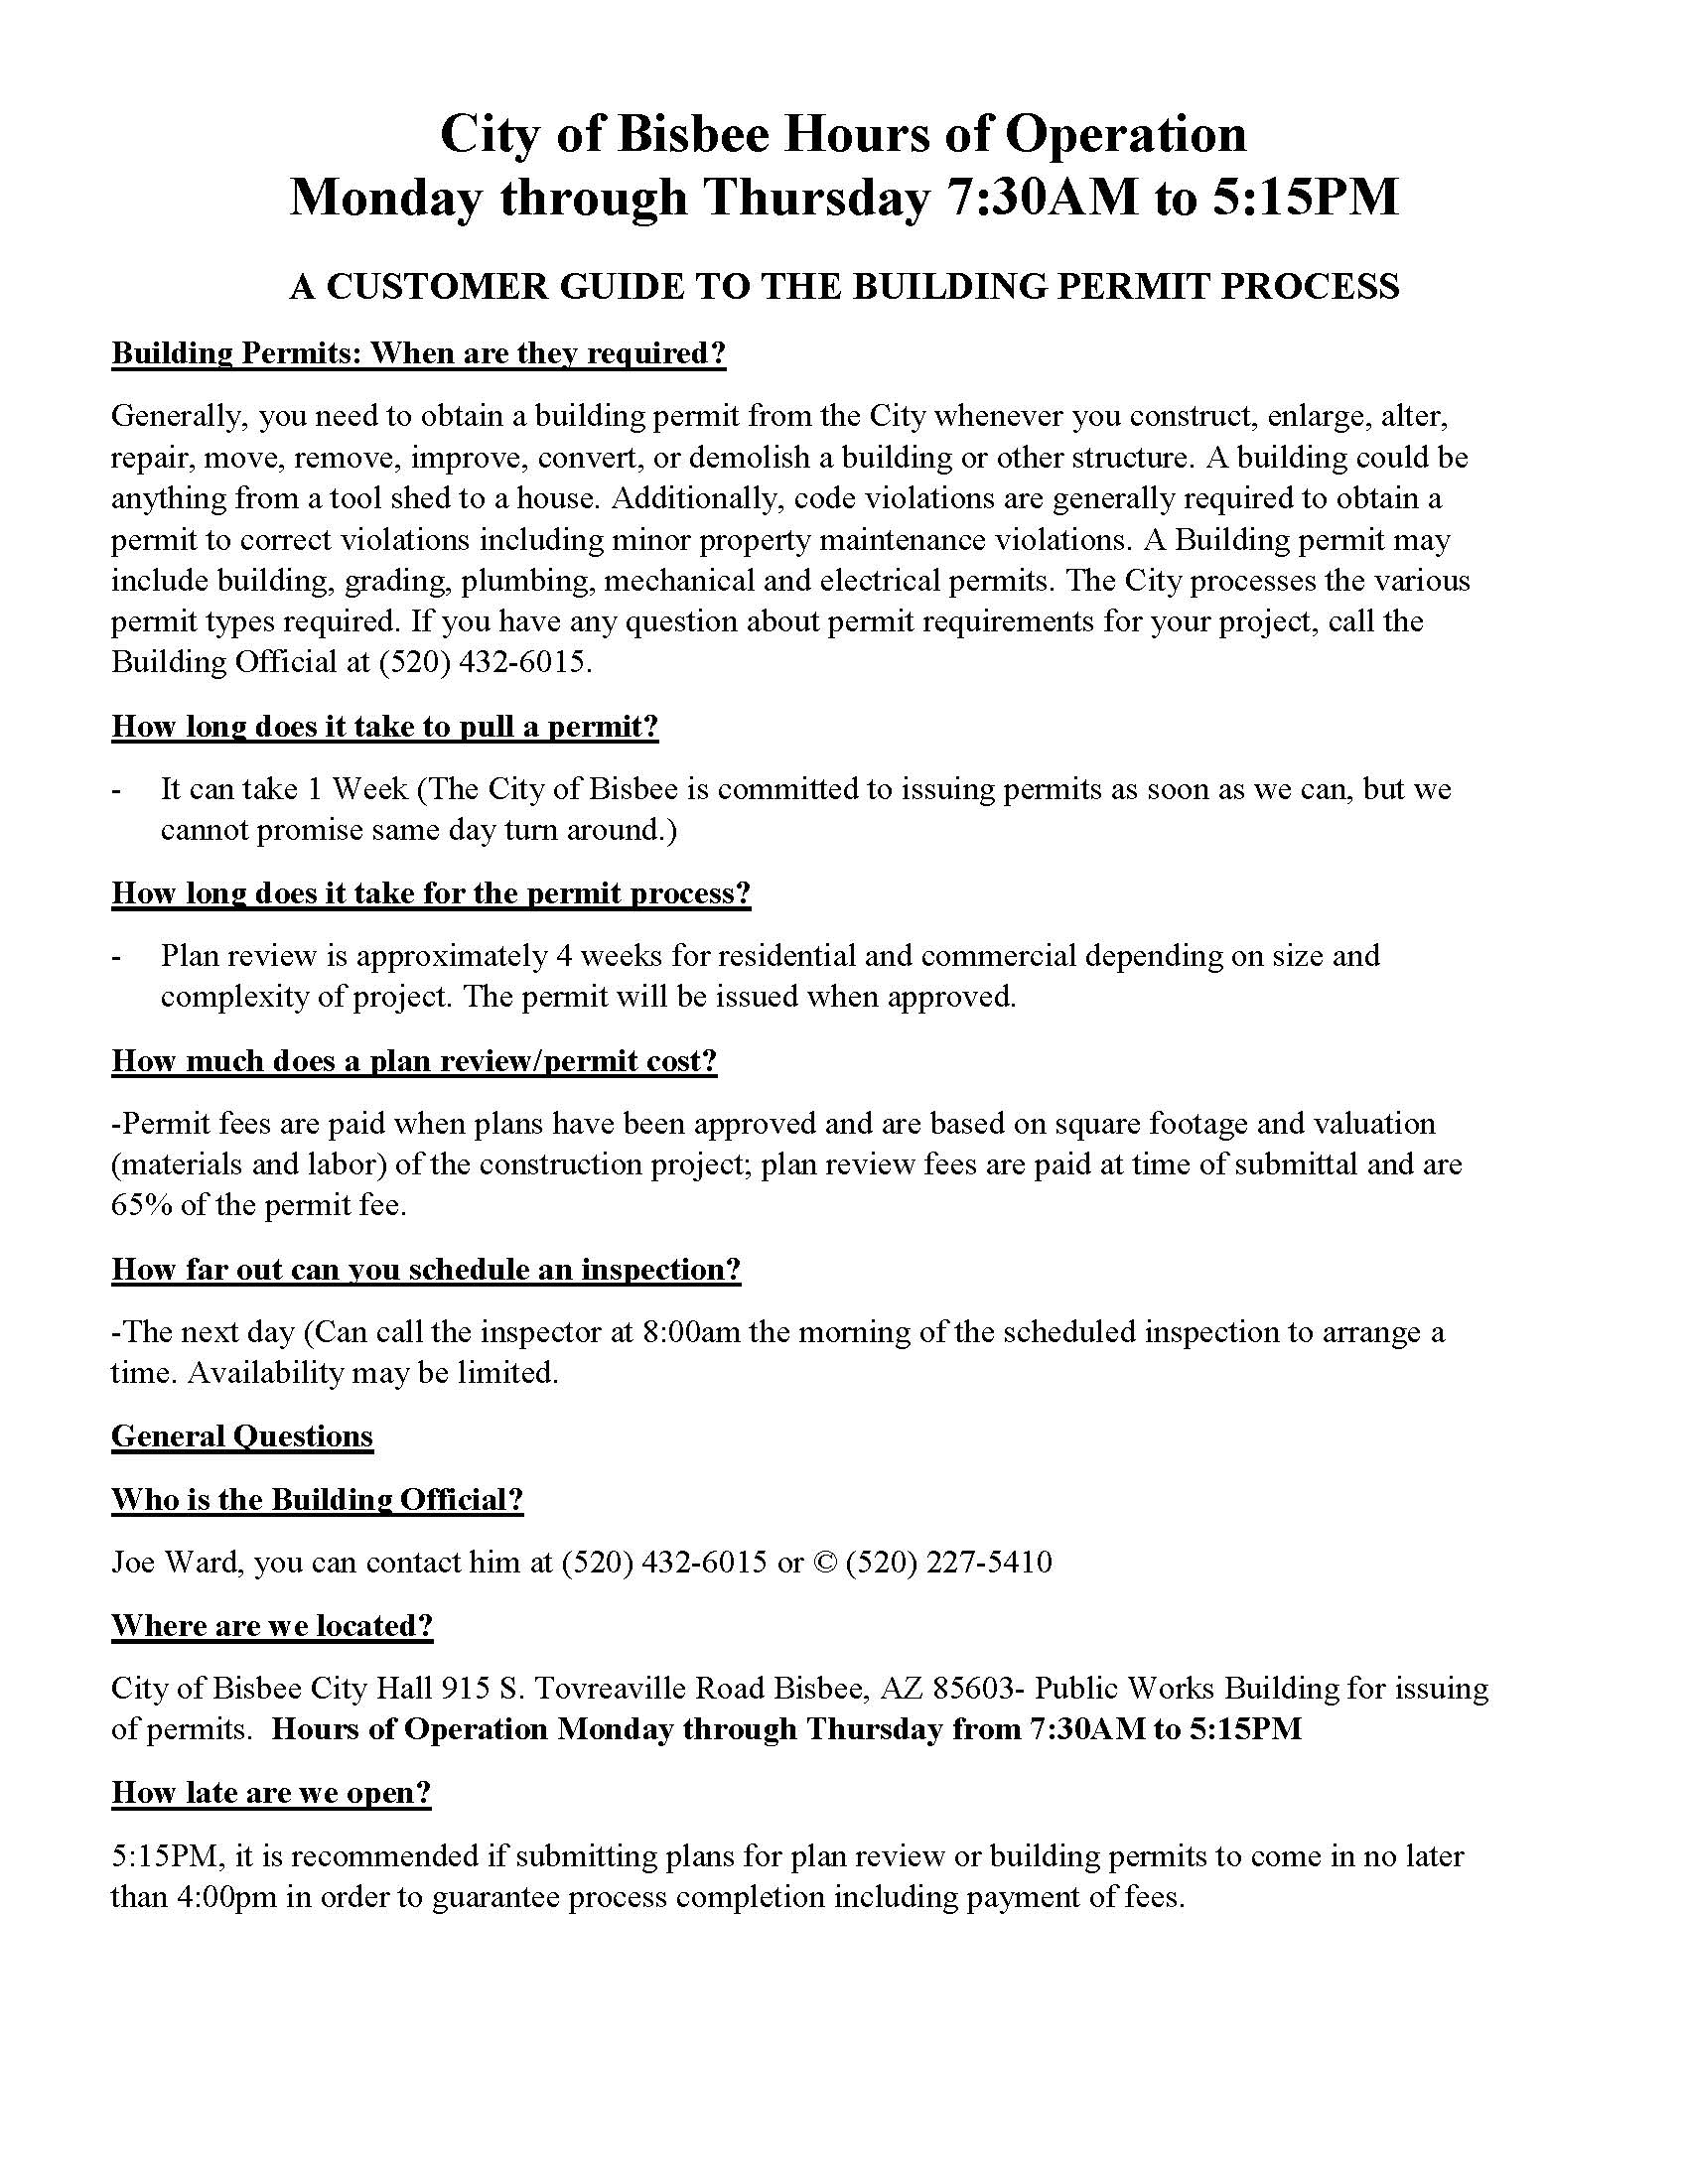 A CUSTOMER GUIDE TO THE BUILDING PERMIT PROCESS